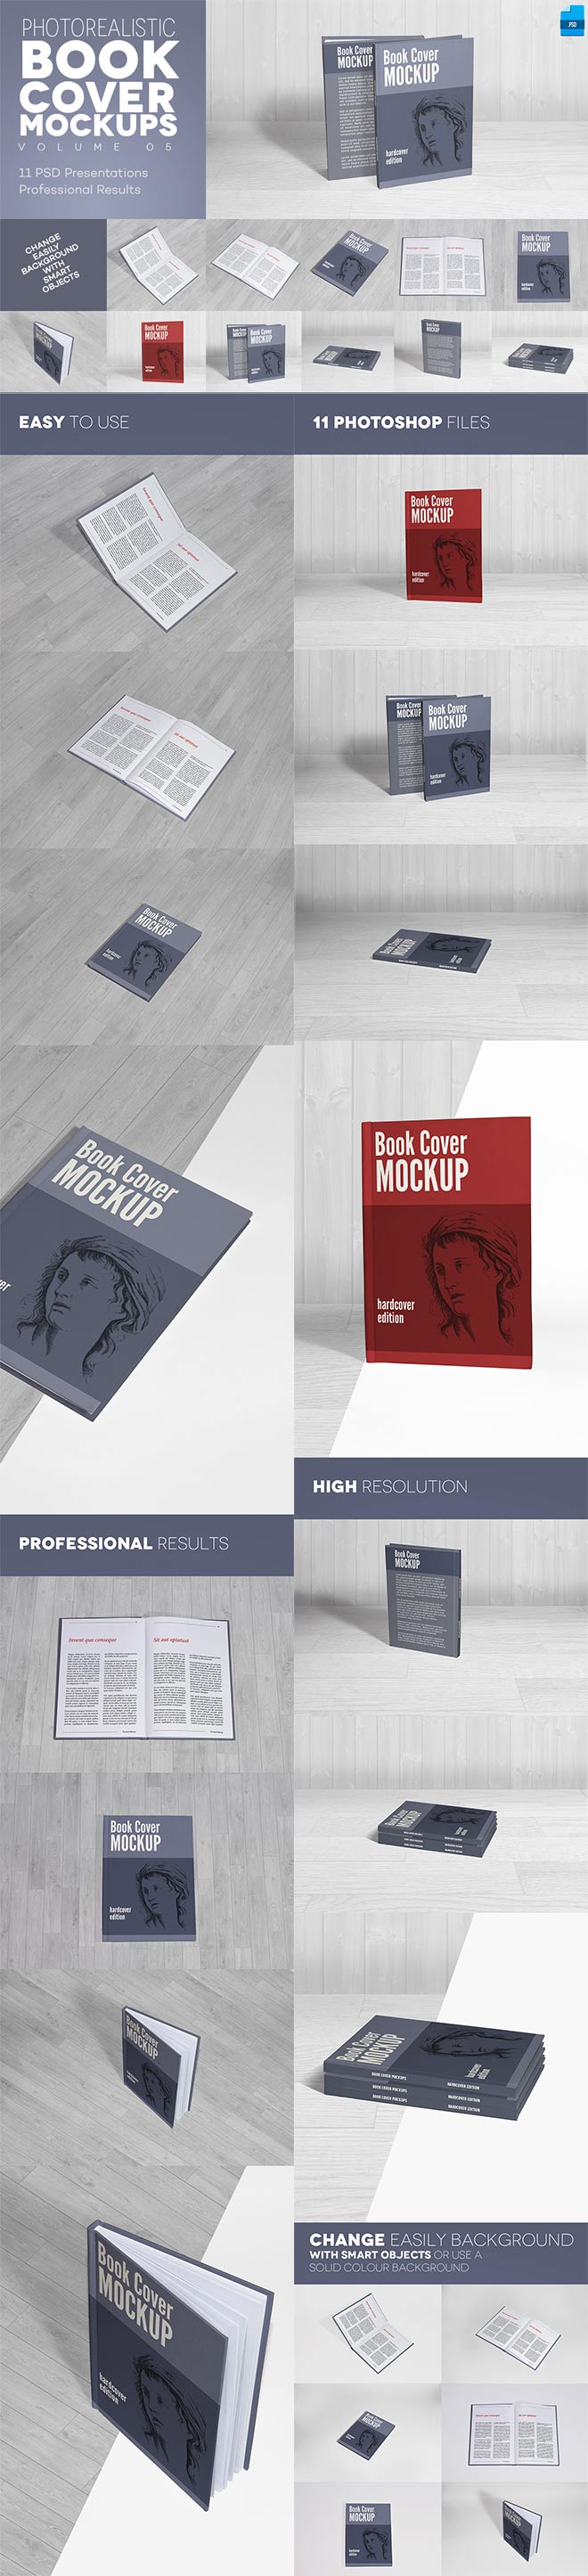 Hardcover Book Cover Mockups